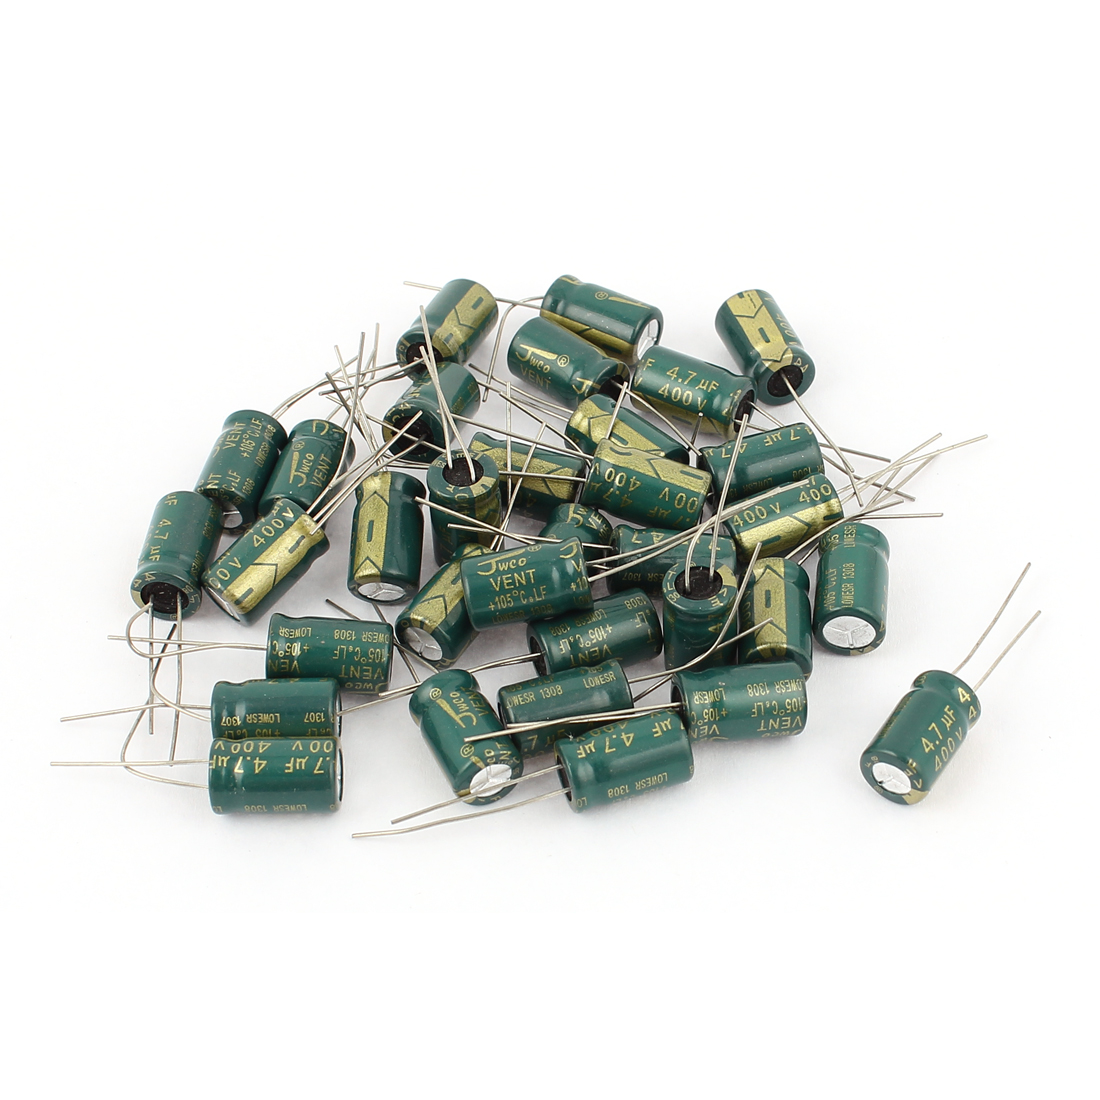 30pcs 8 x 12mm Cylindrical Radial Lead Electrolytic Capacitor 105C 4.7uF 400V